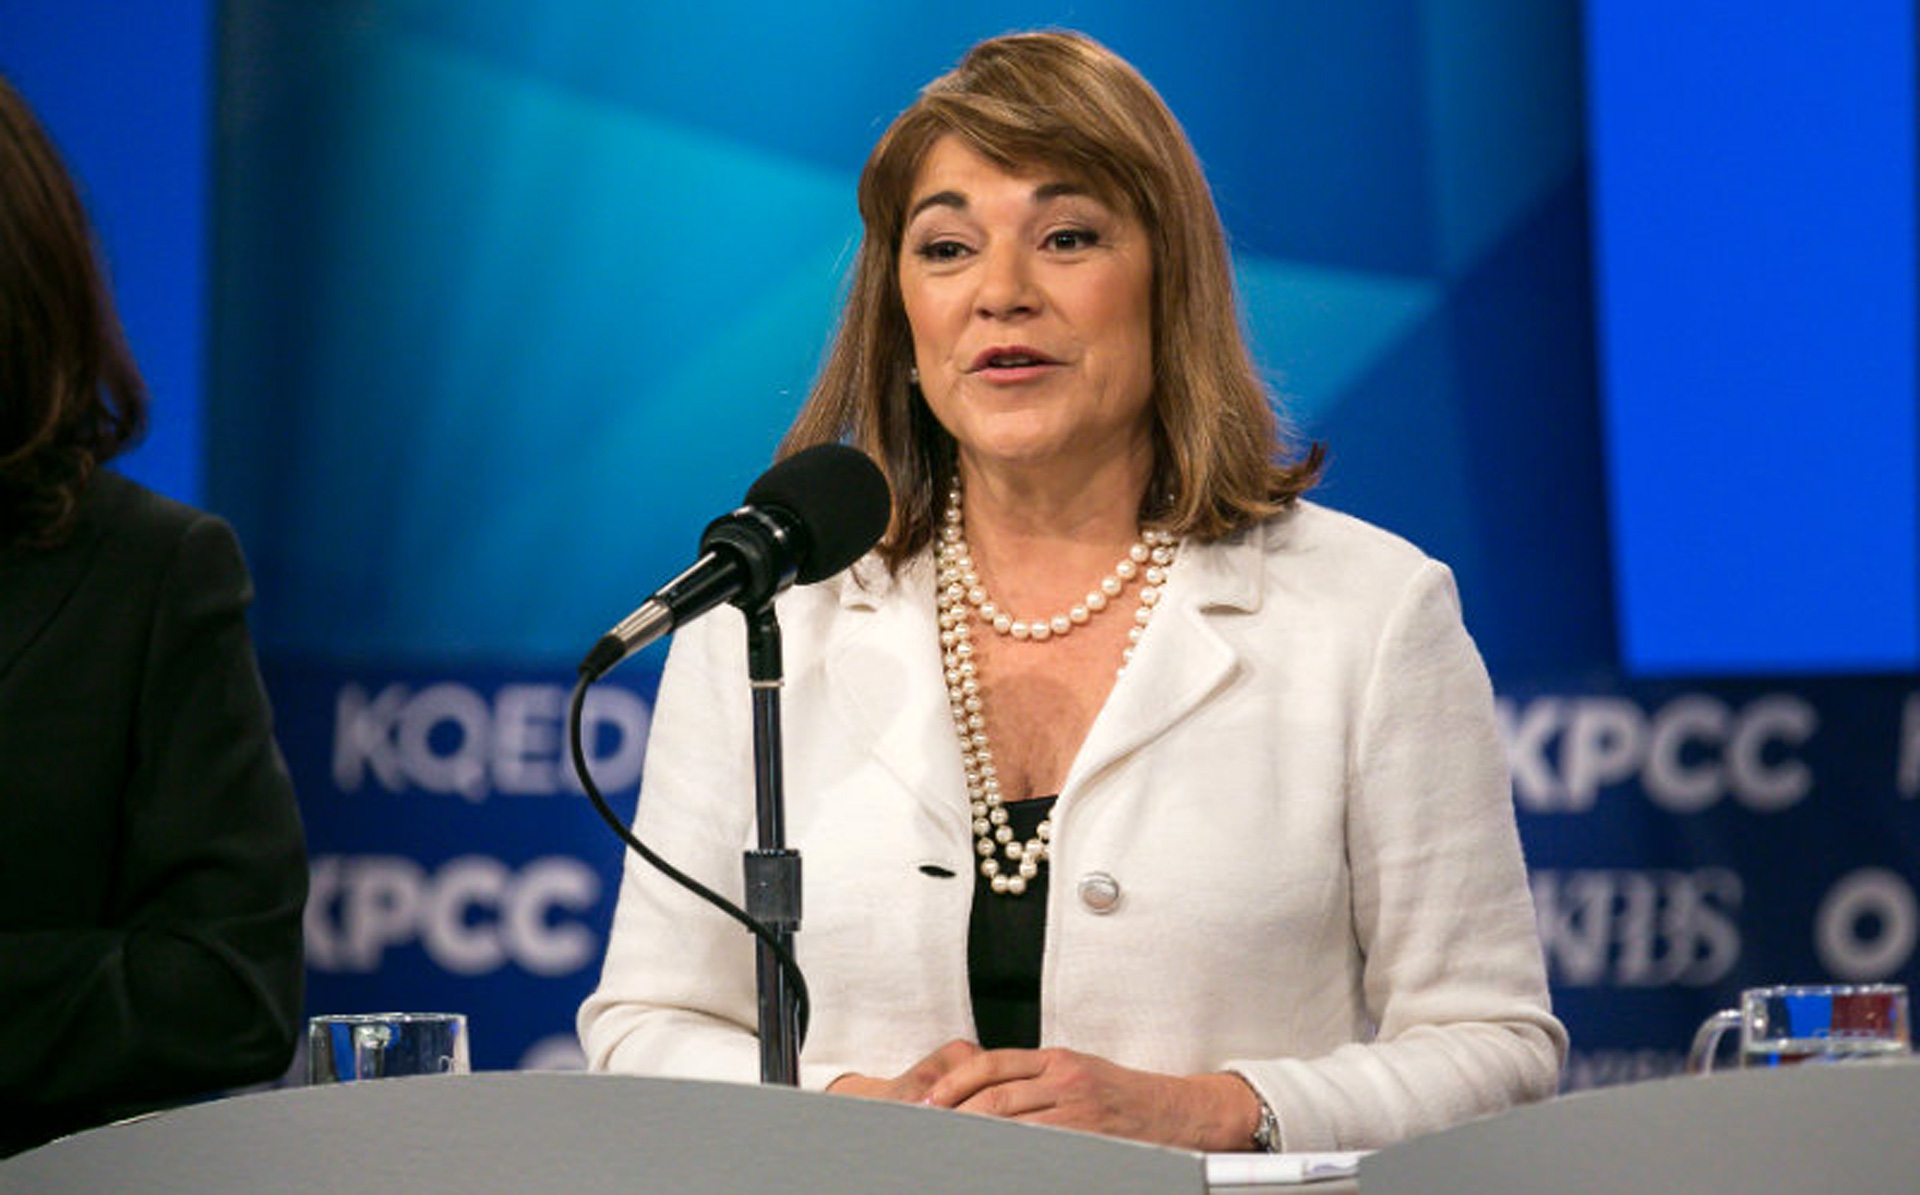 Democratic U.S. Senate candidate Loretta Sanchez speaks during Tuesday's debate.